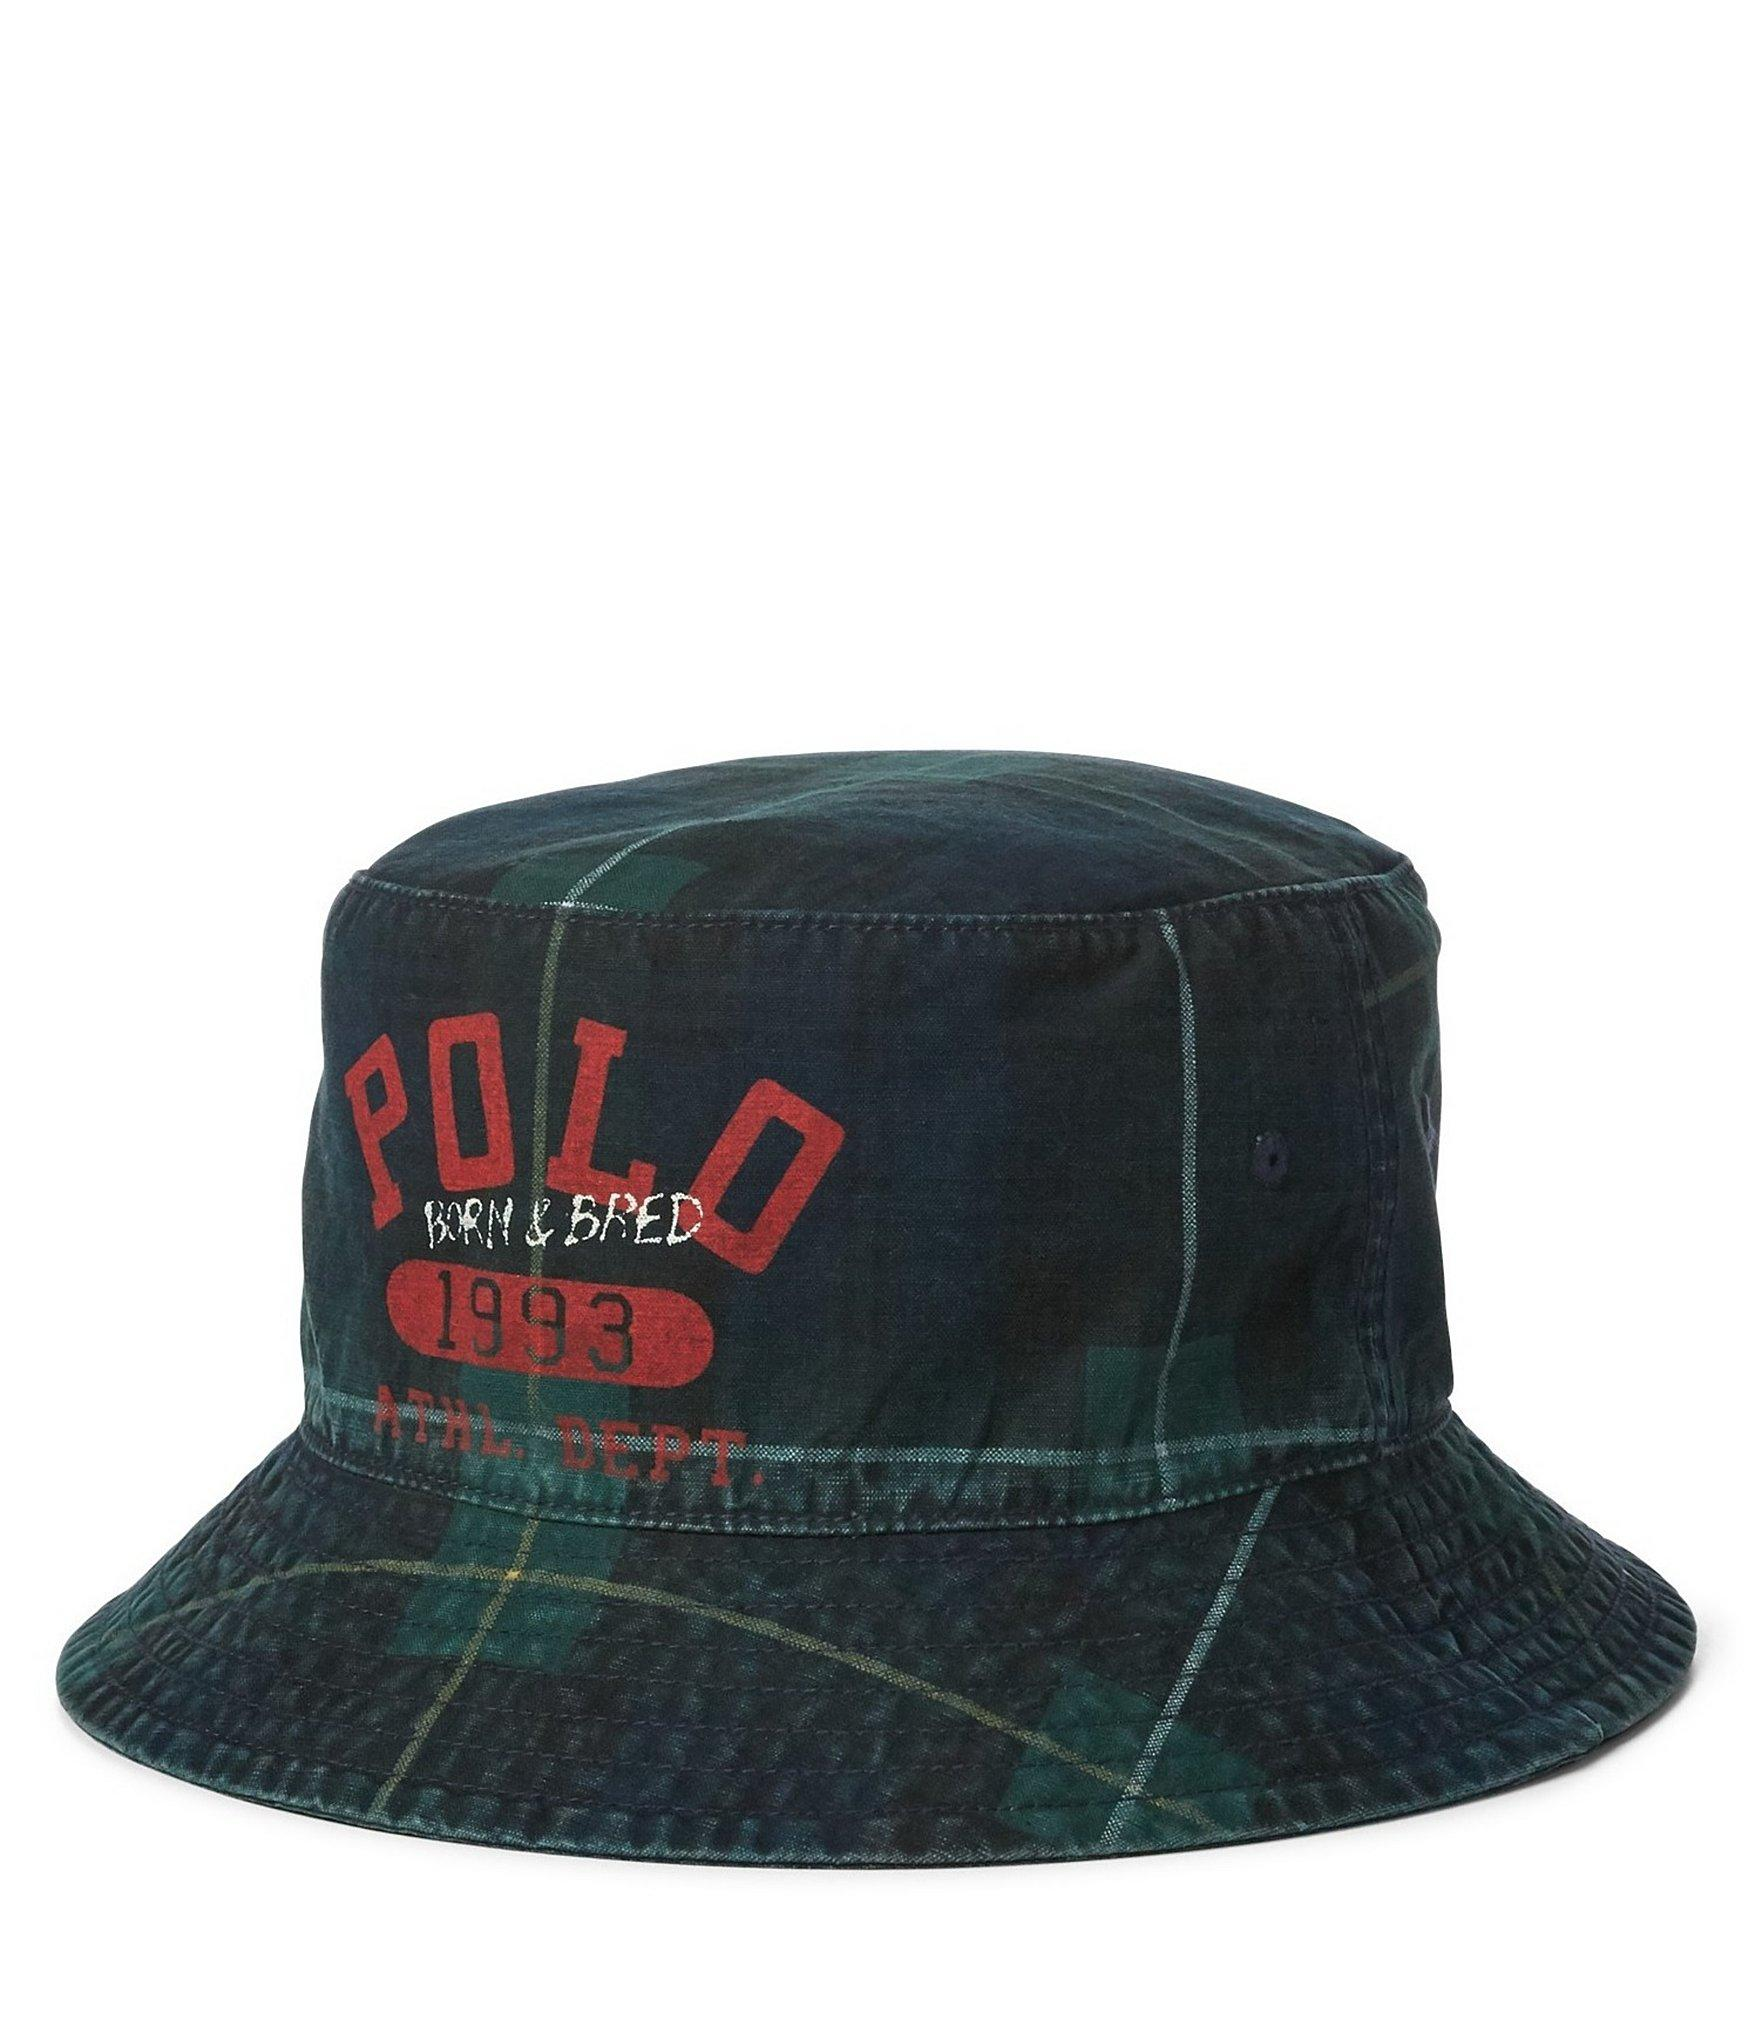 0ba3430ce11b1 Polo Ralph Lauren Yale Bucket Hat in Green for Men - Lyst